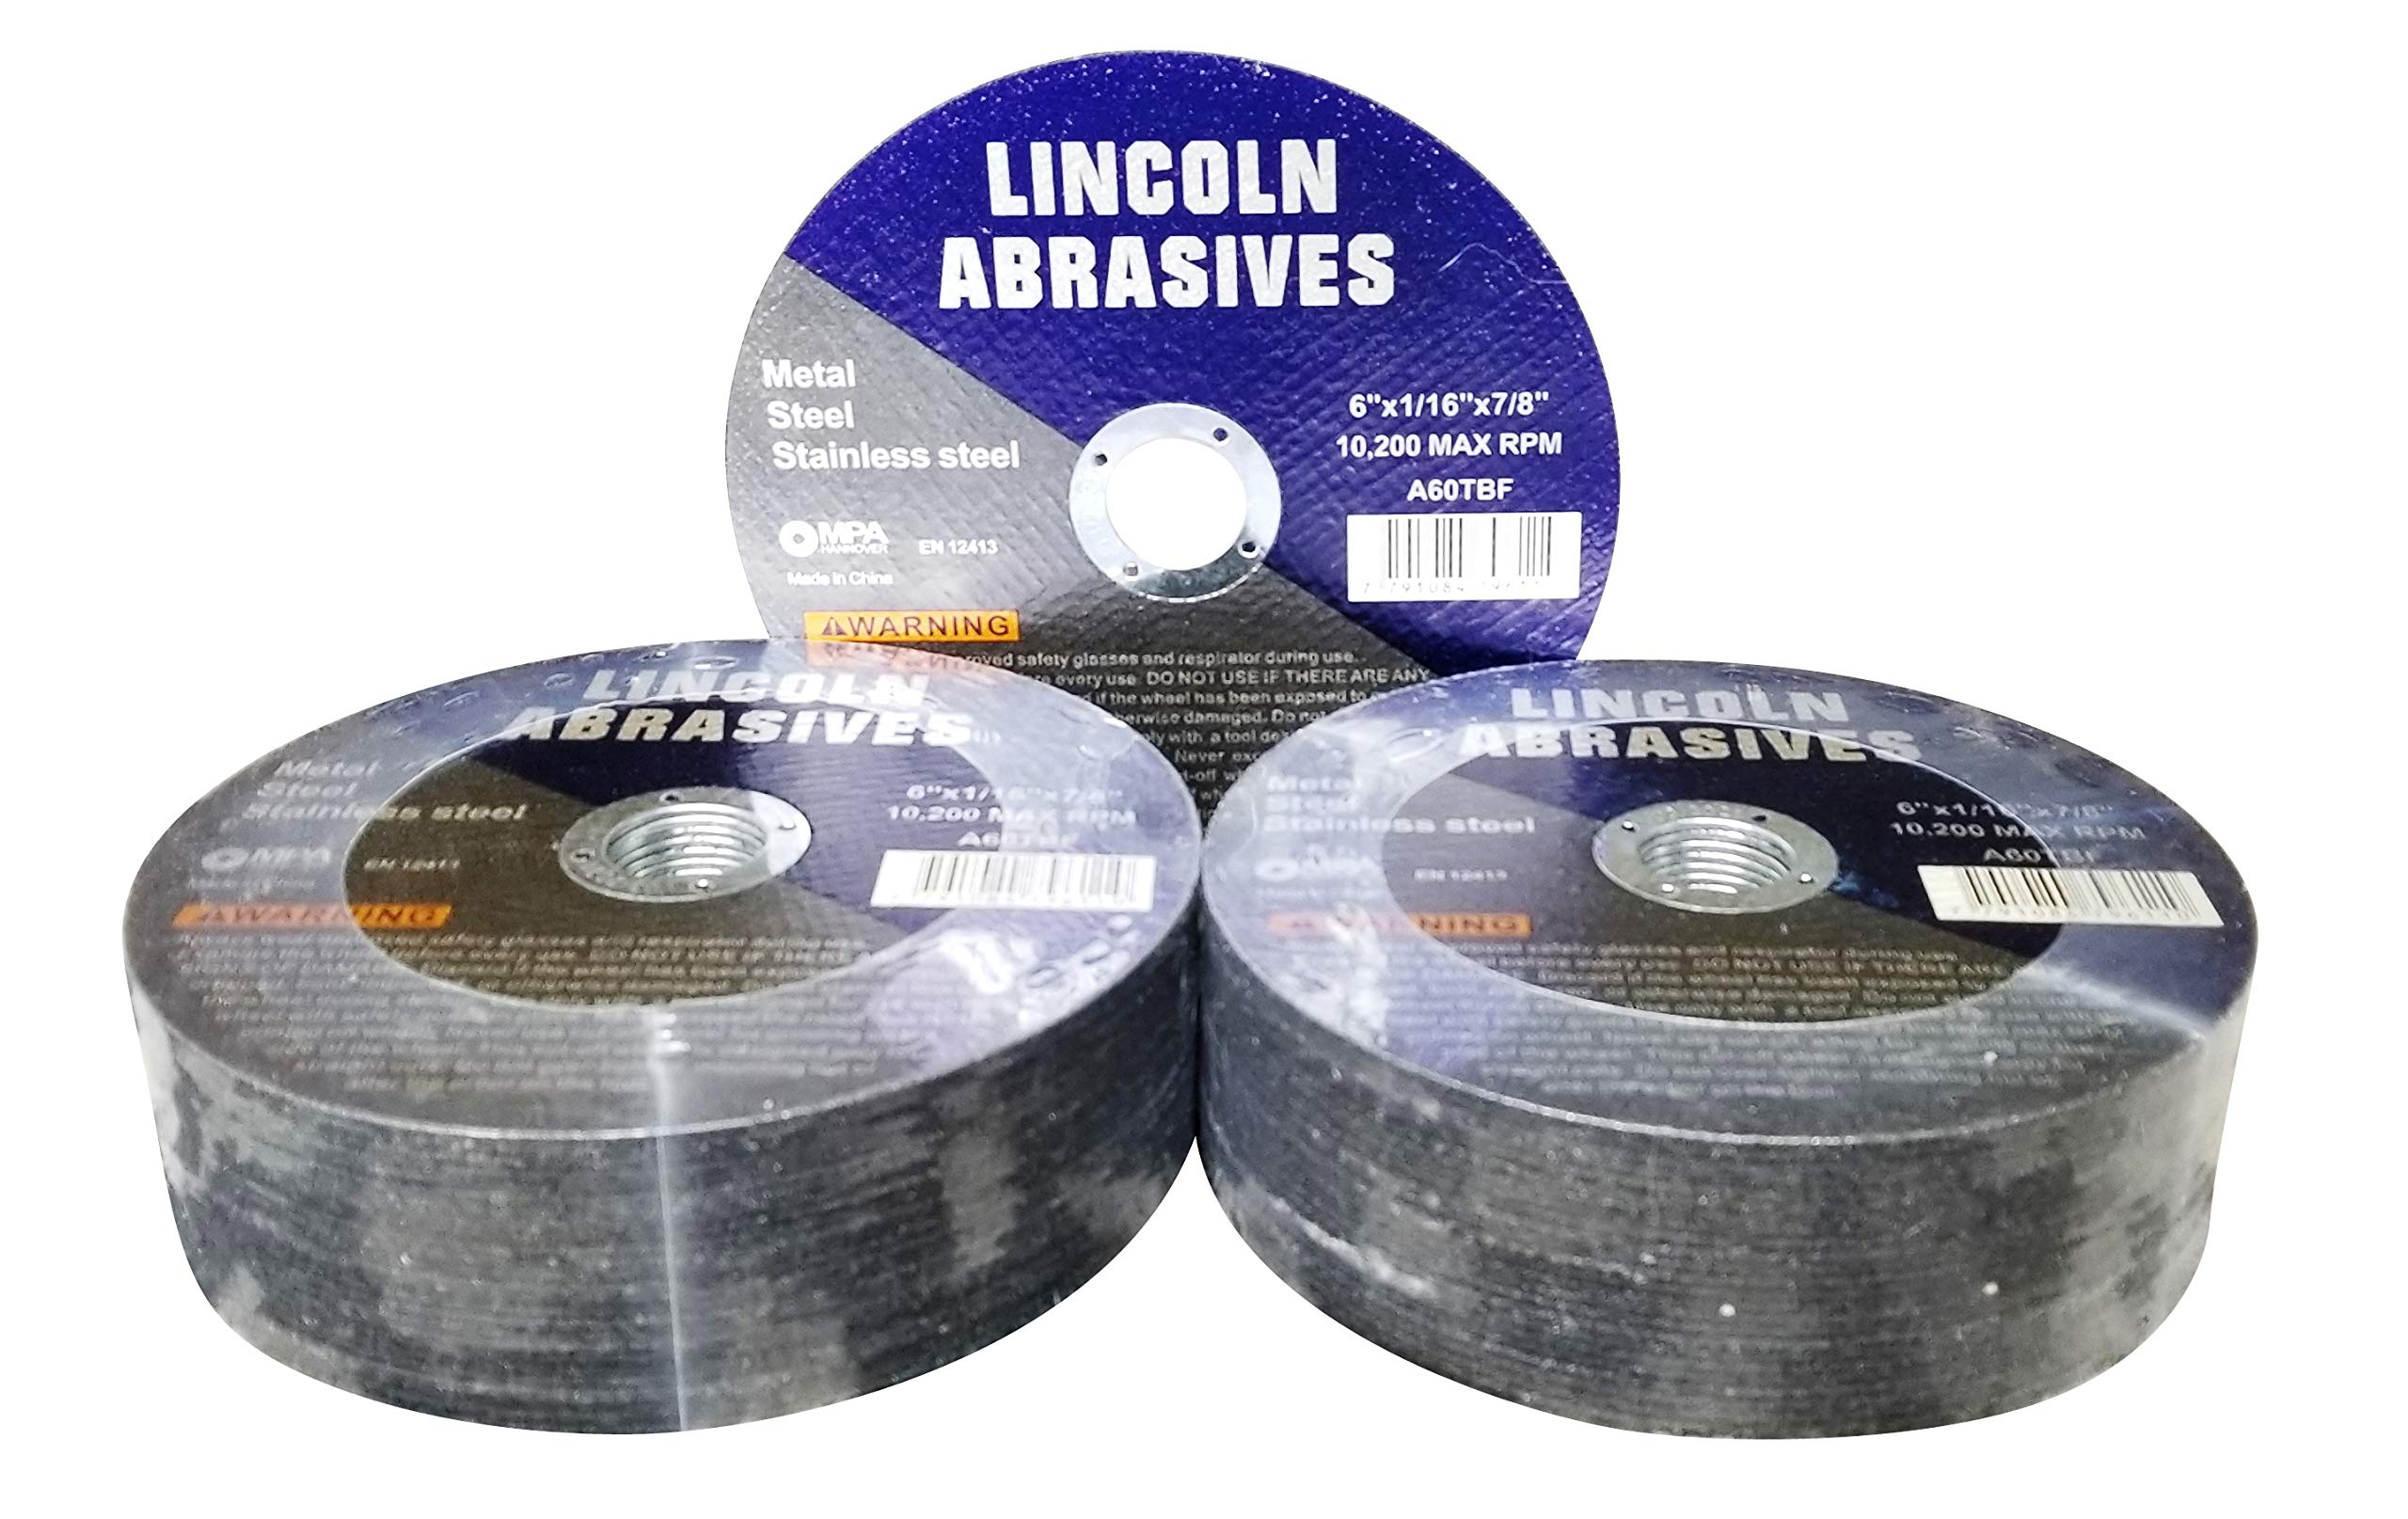 50 Pc 6''x1/16''x7/8'' Cut-Off Wheels Lincoln Abrasives Metal & Stainless Steel